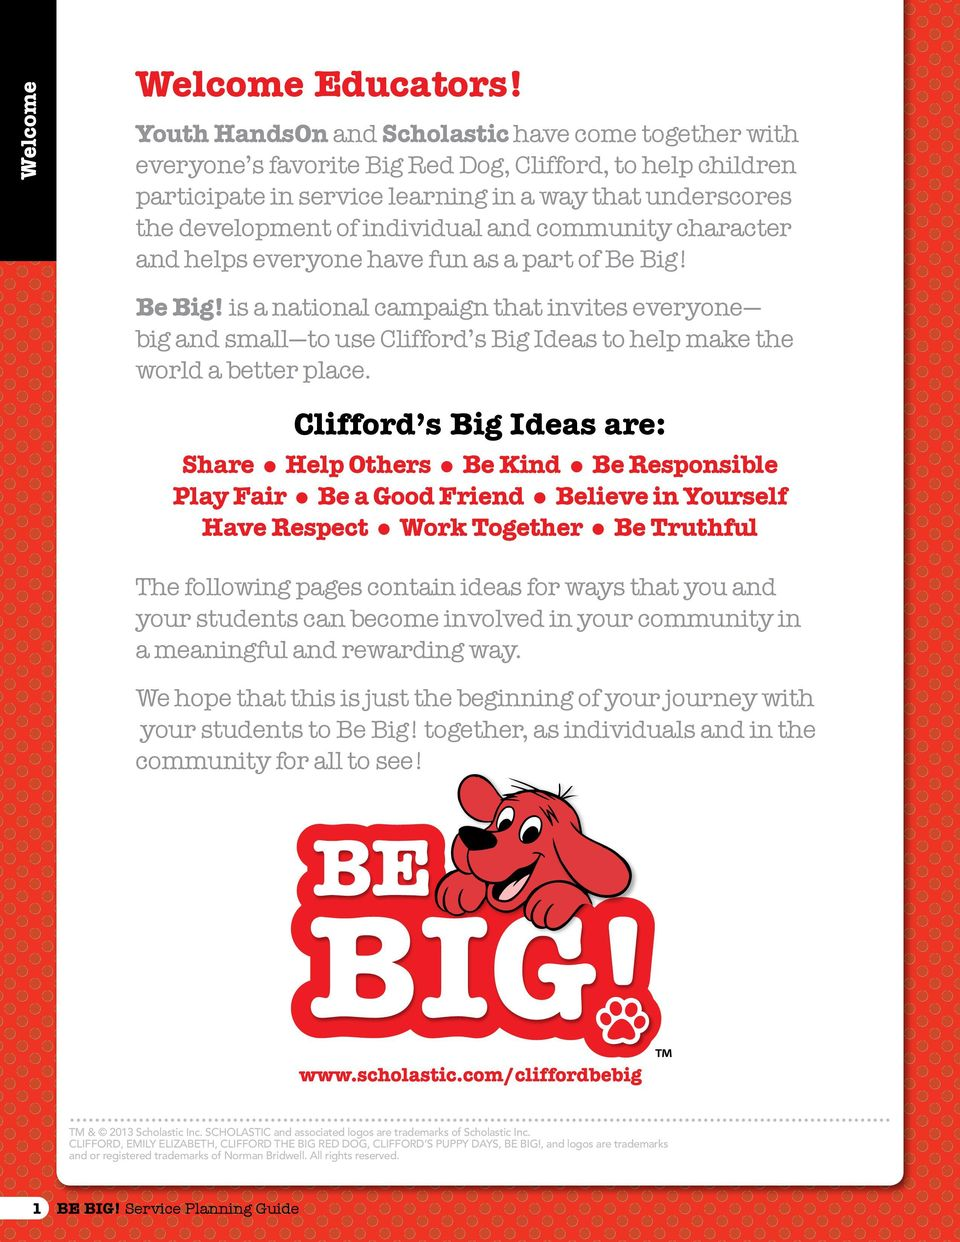 individual and community character and helps everyone have fun as a part of Be Big!